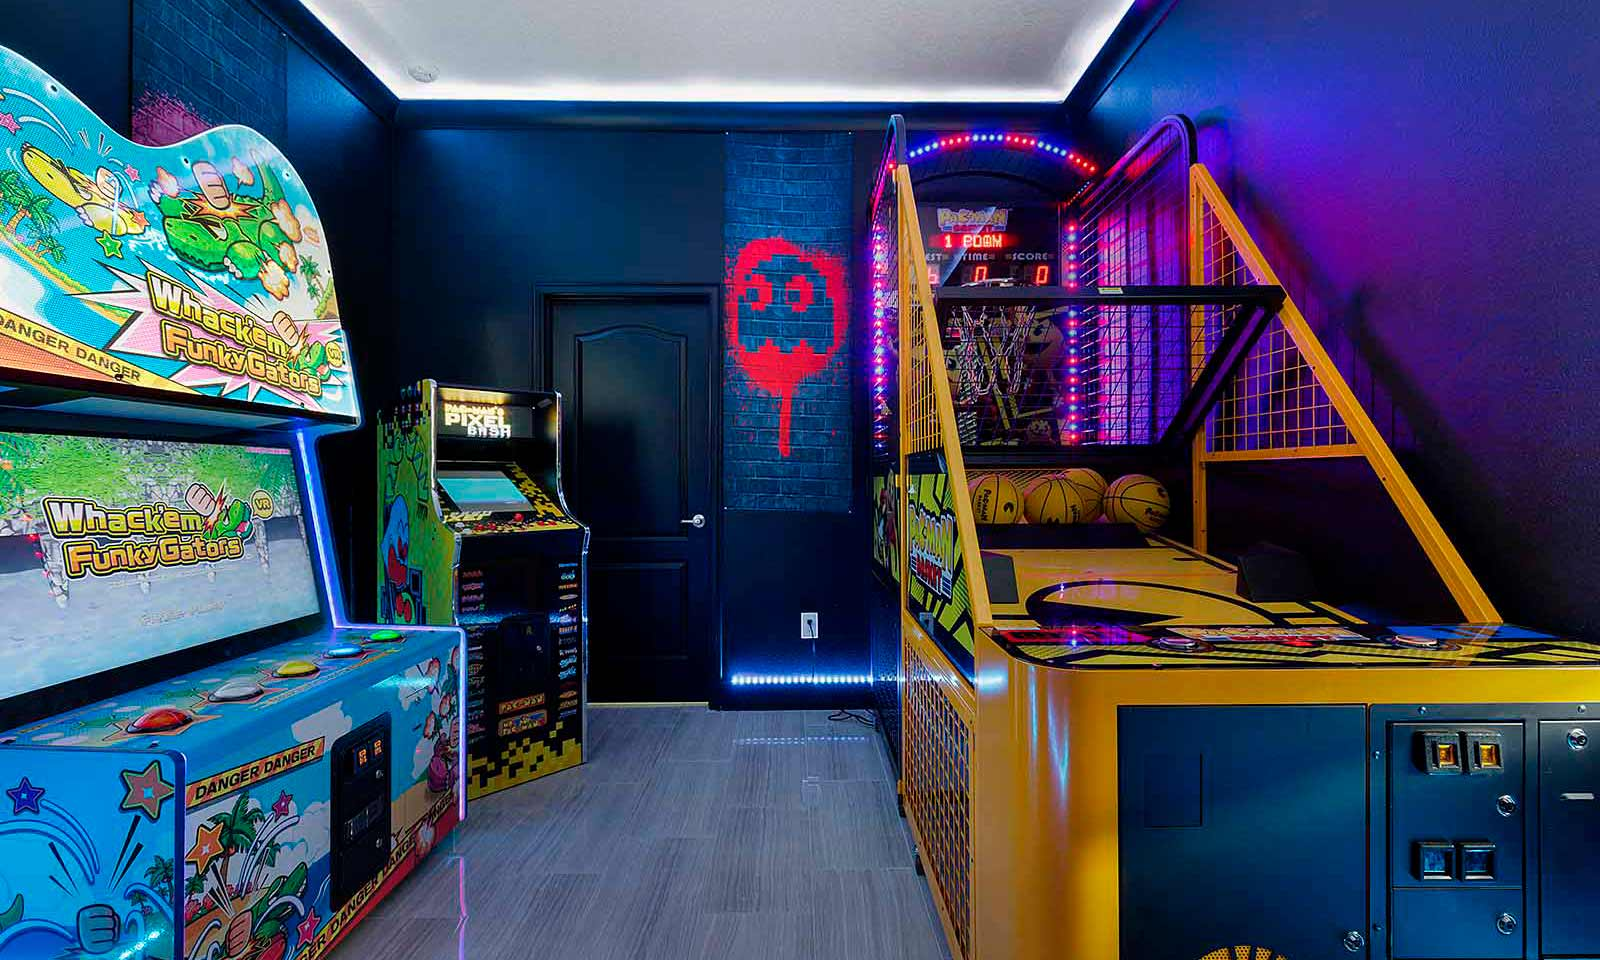 [amenities:Arcade-Games:2] Arcade Games